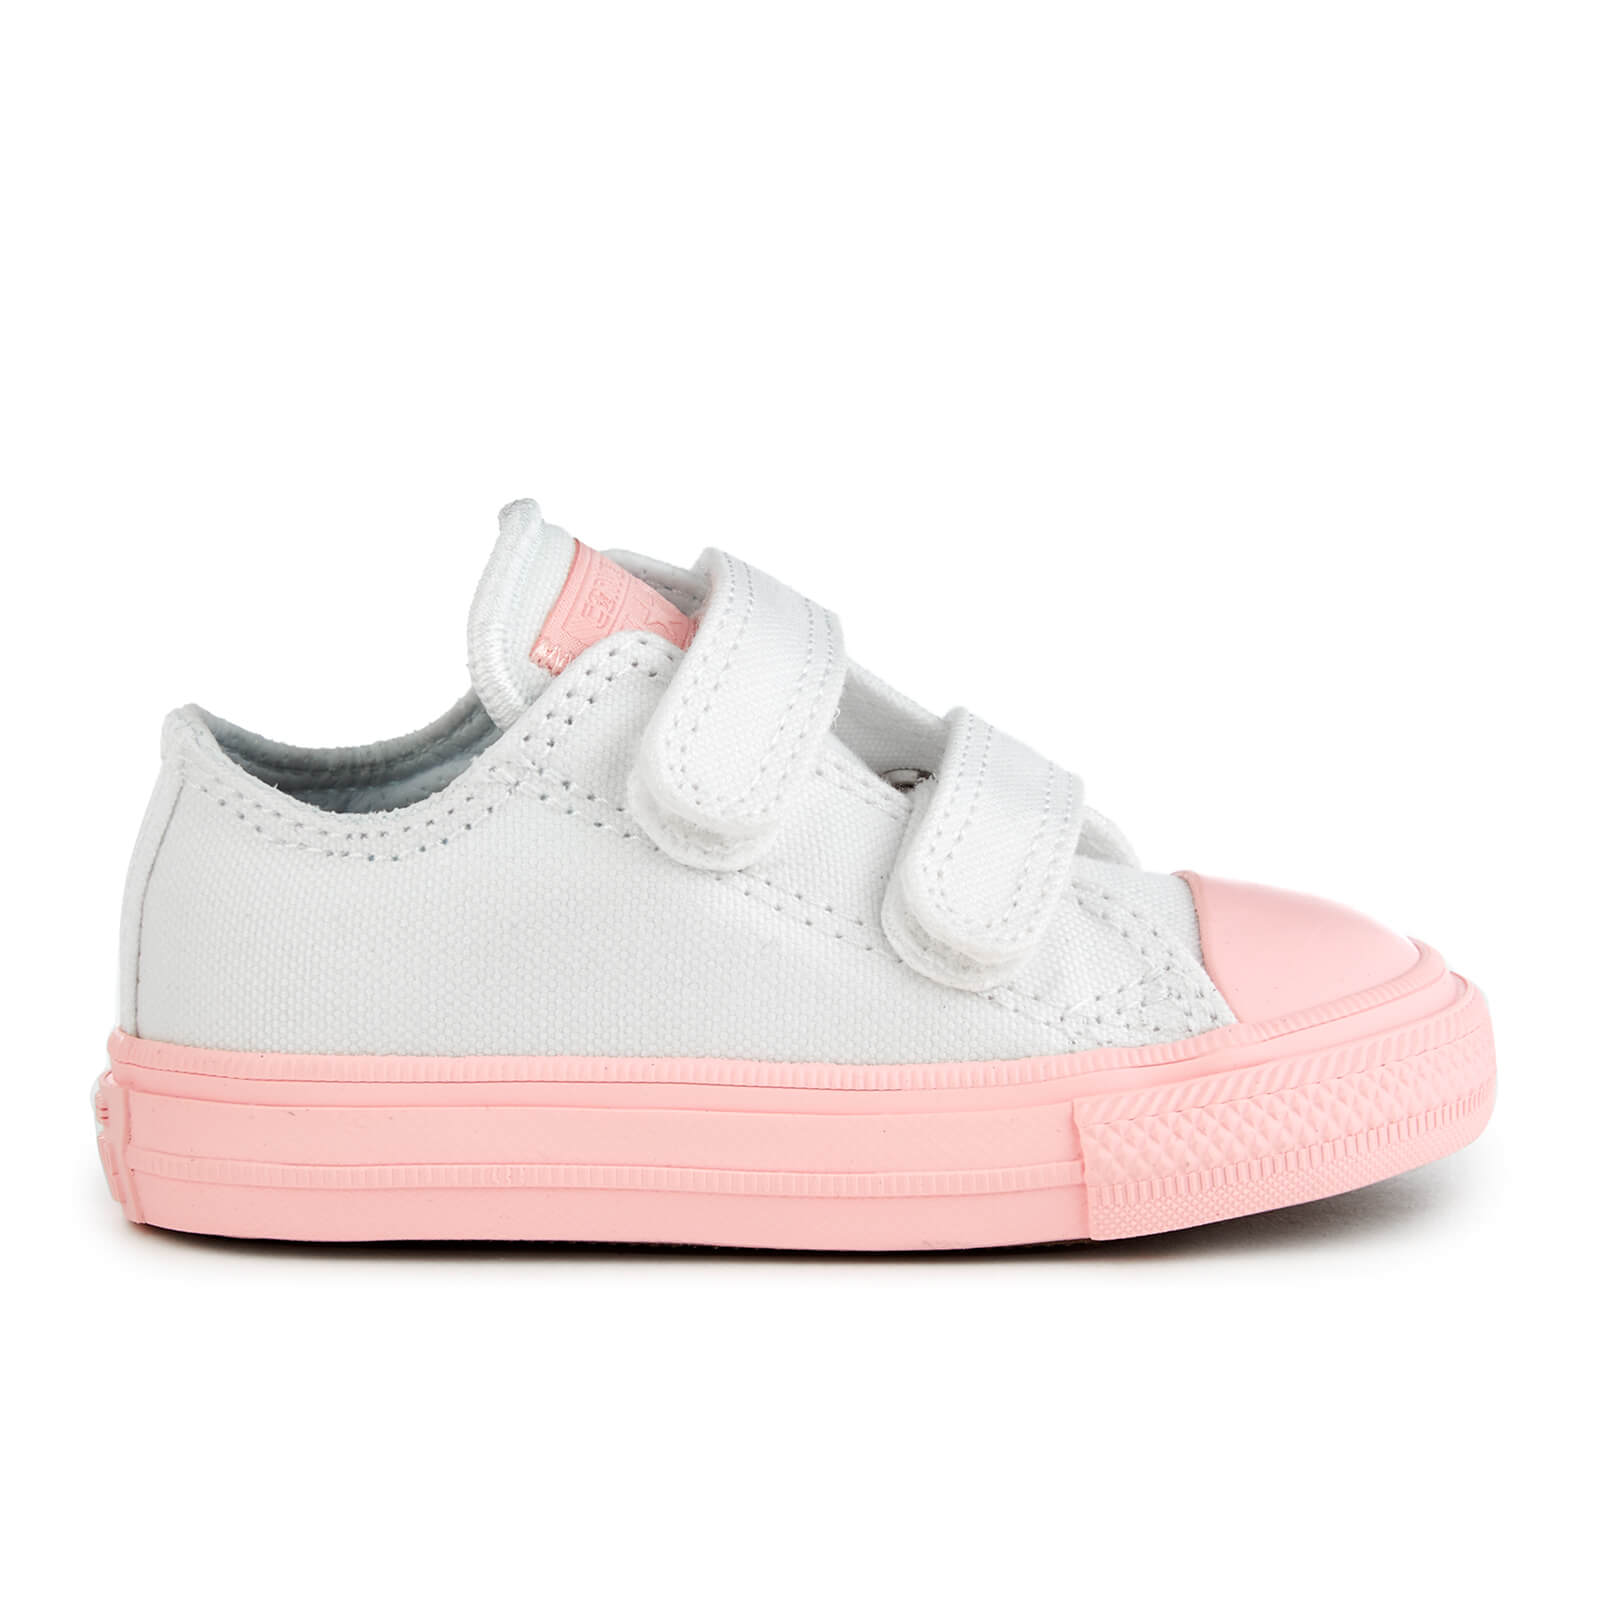 Converse Chuck Taylor All Star II Ox WhiteVapor Pink Textile Child